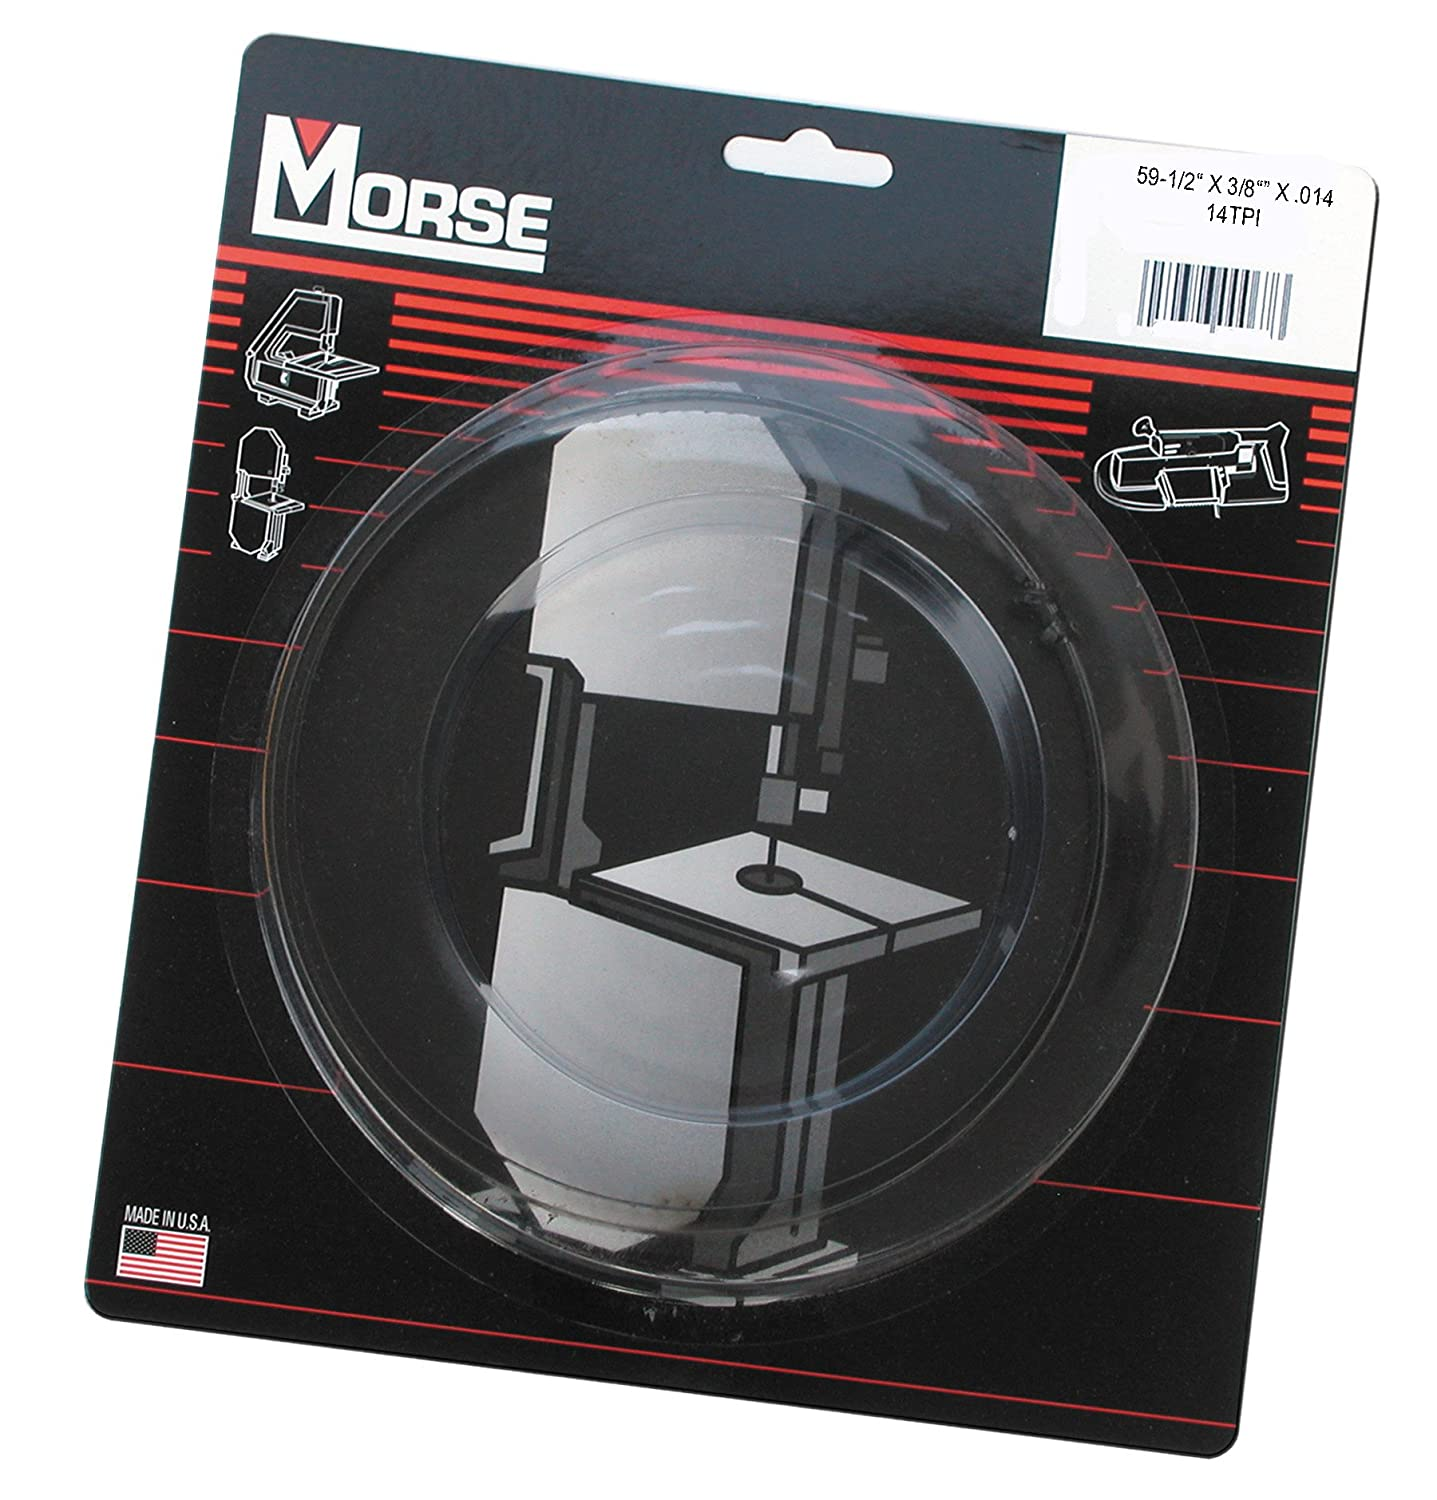 MK Morse ZCDC14 14TPI Woodworking Stationary Bandsaw Blade, 59-1/2-Inch by 3/8-Inch